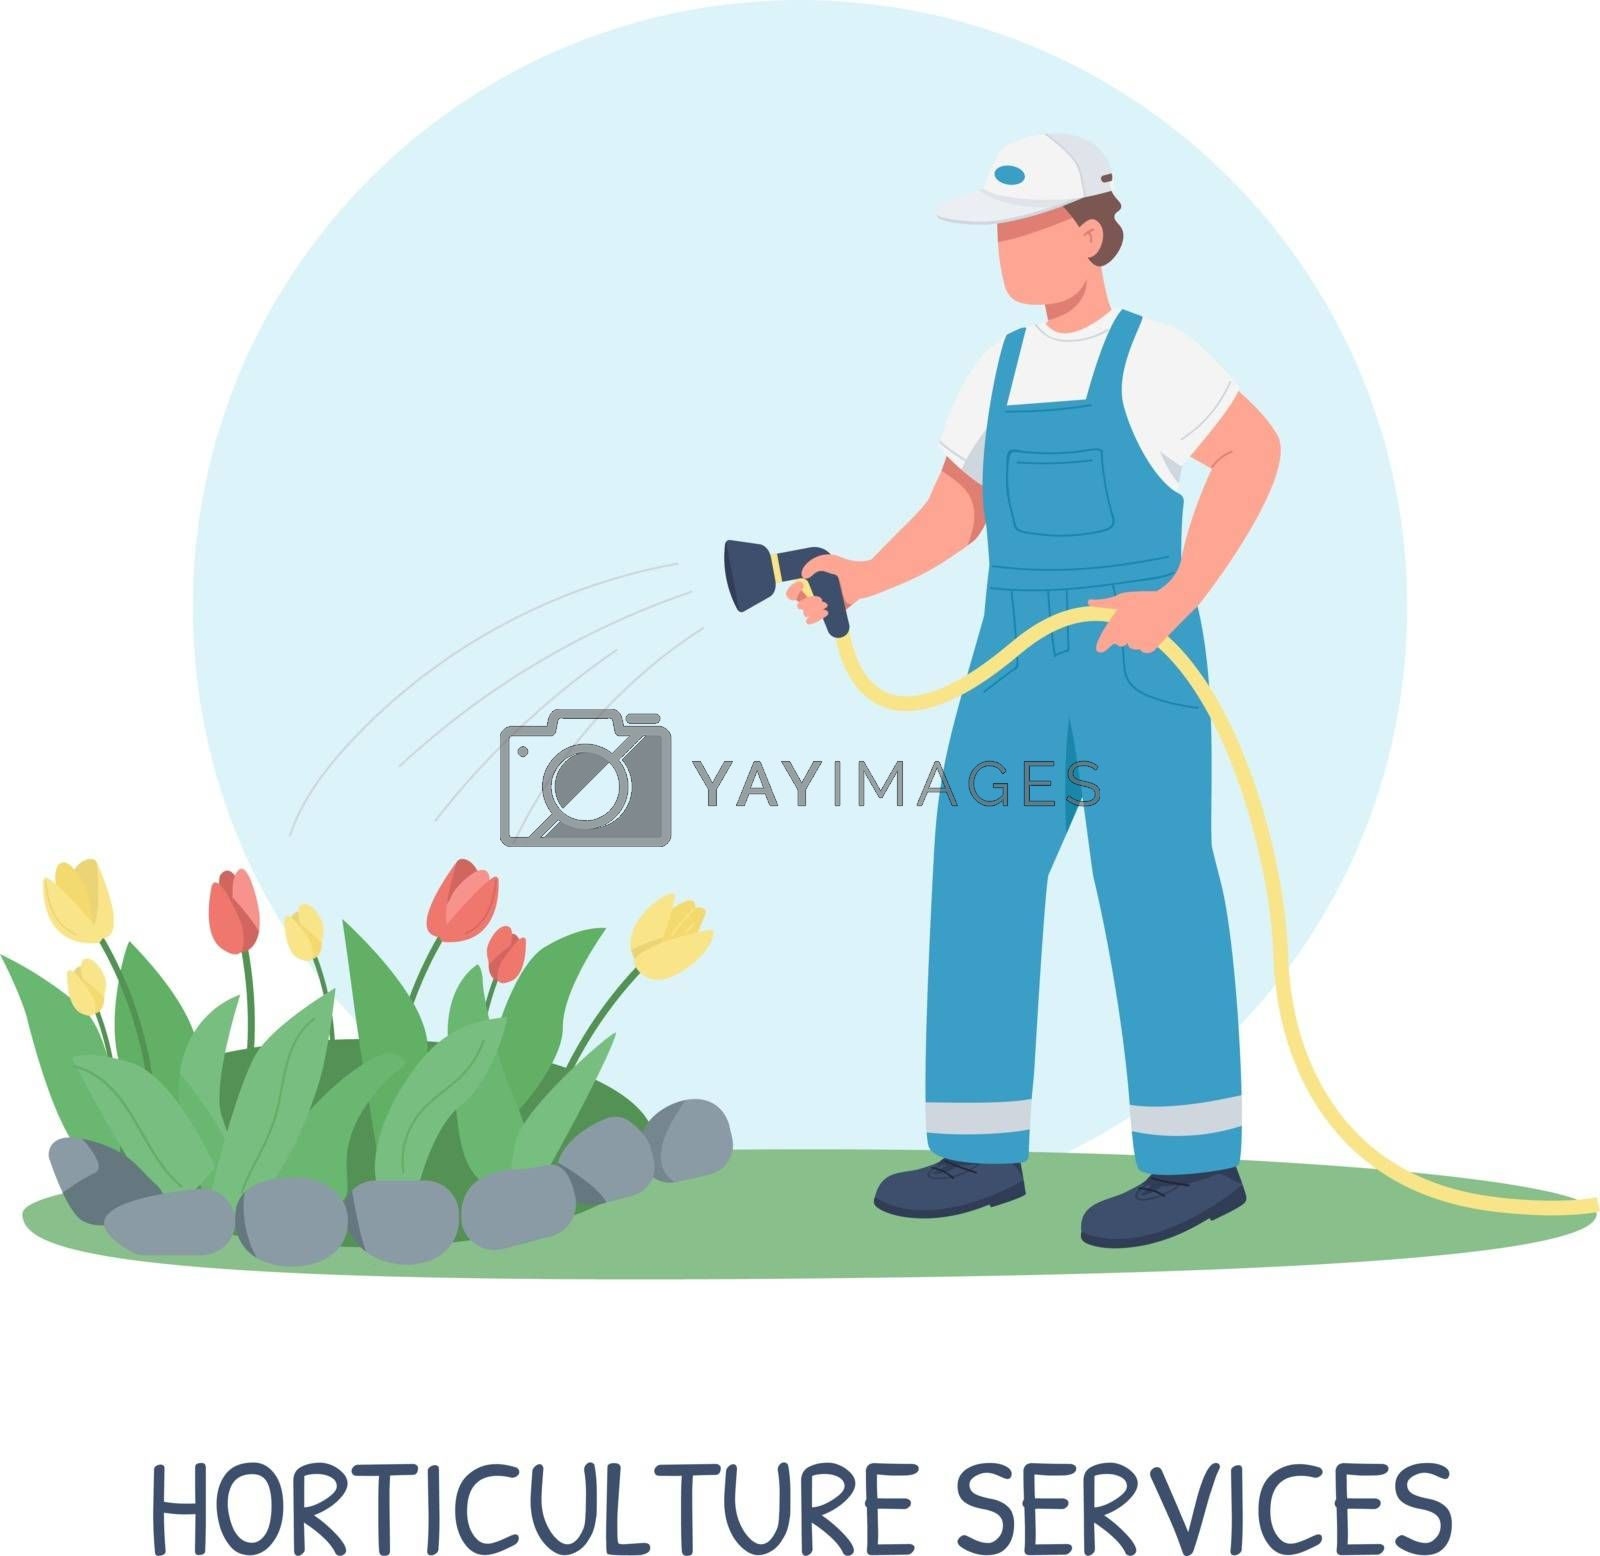 Gardening social media post mockup. Horticulture services phrase. Web banner design template. Professional landscaping booster, content layout with inscription. Poster, print ads and flat illustration